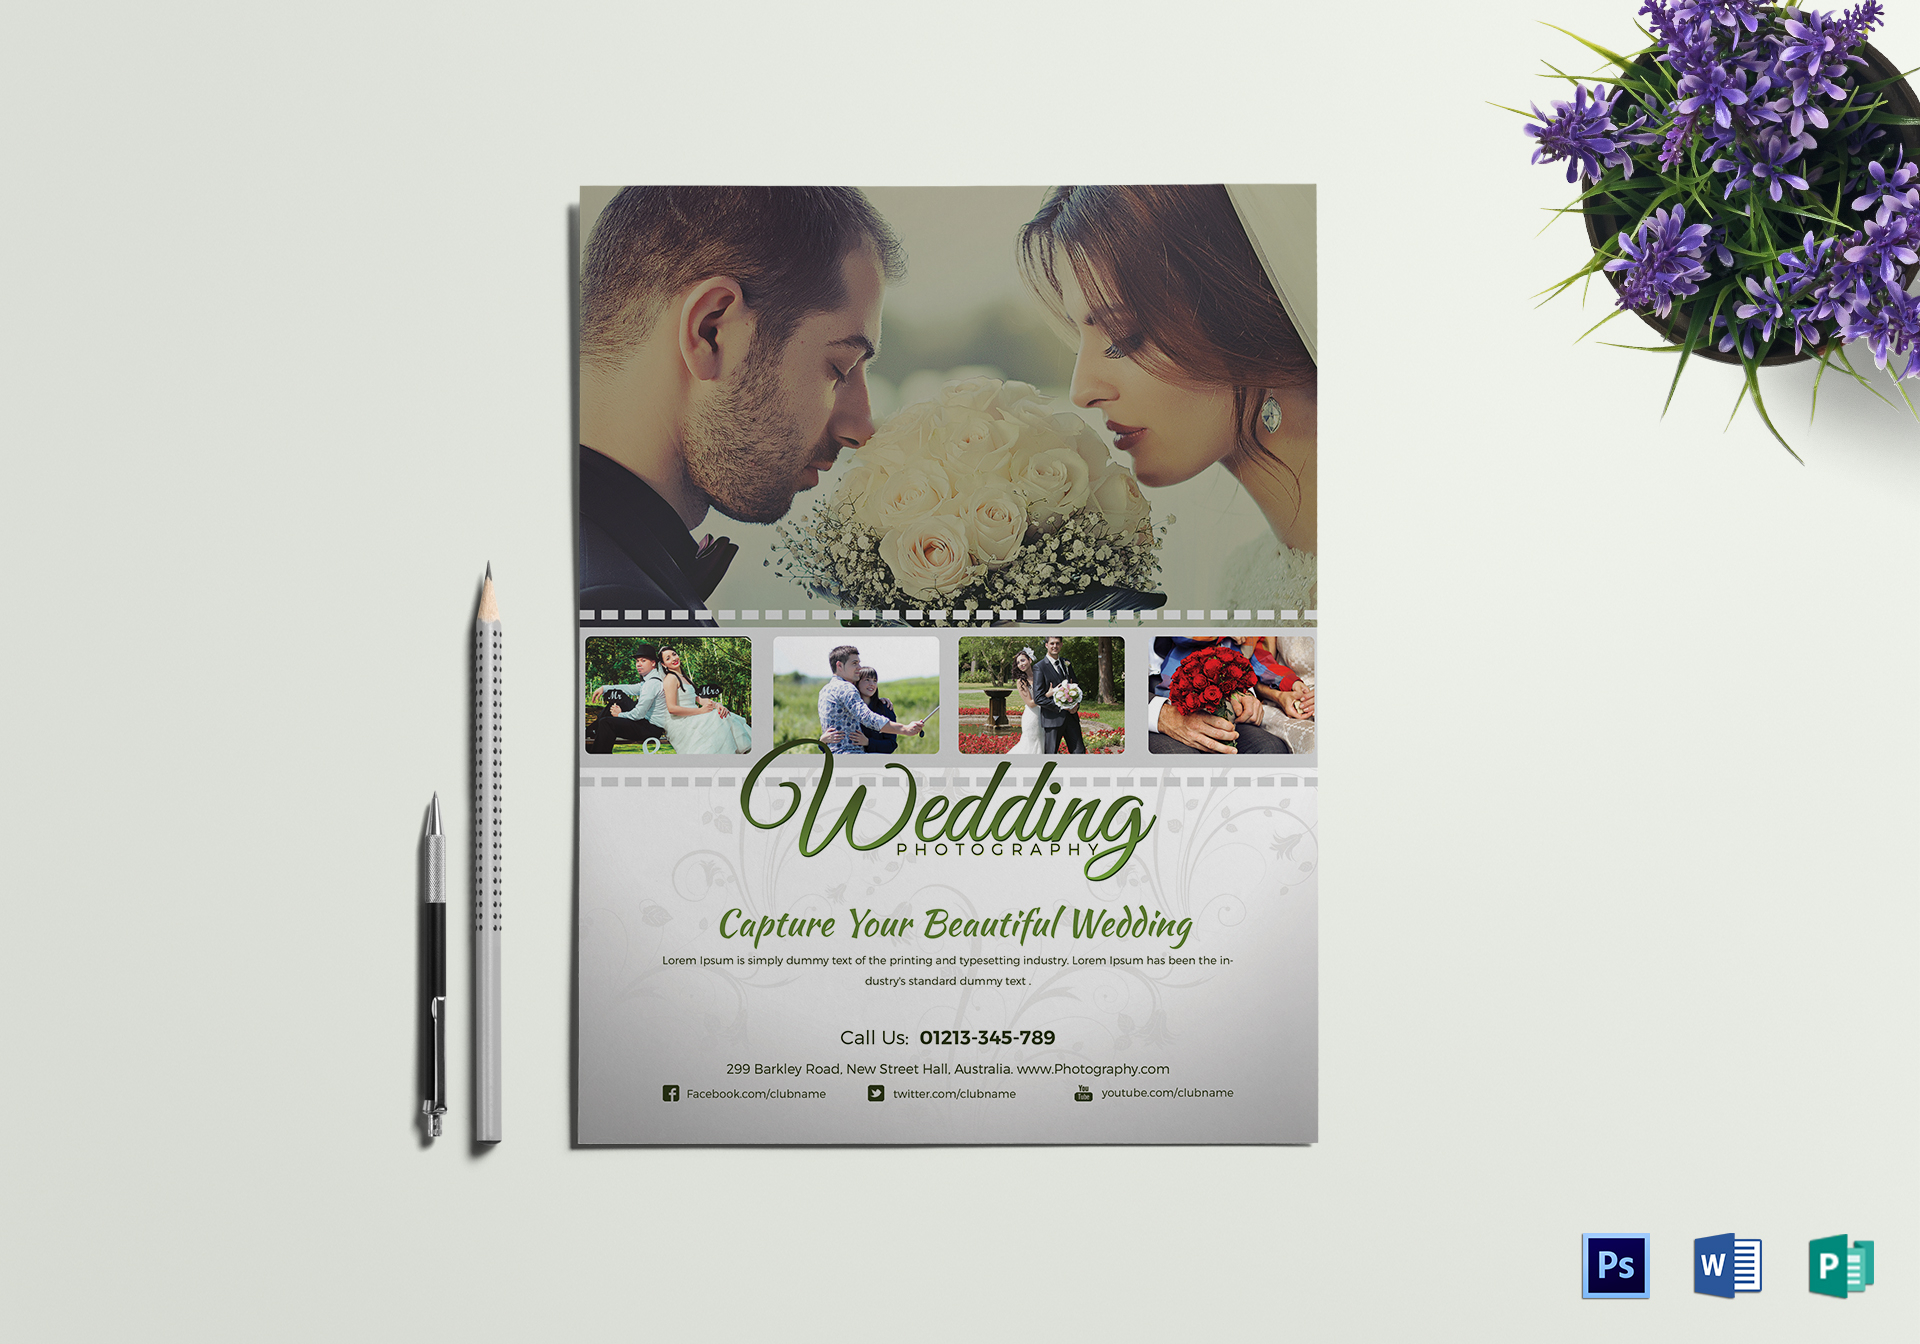 Wedding Photography Flyer Design Template In Word PSD Publisher - Wedding photography brochure template